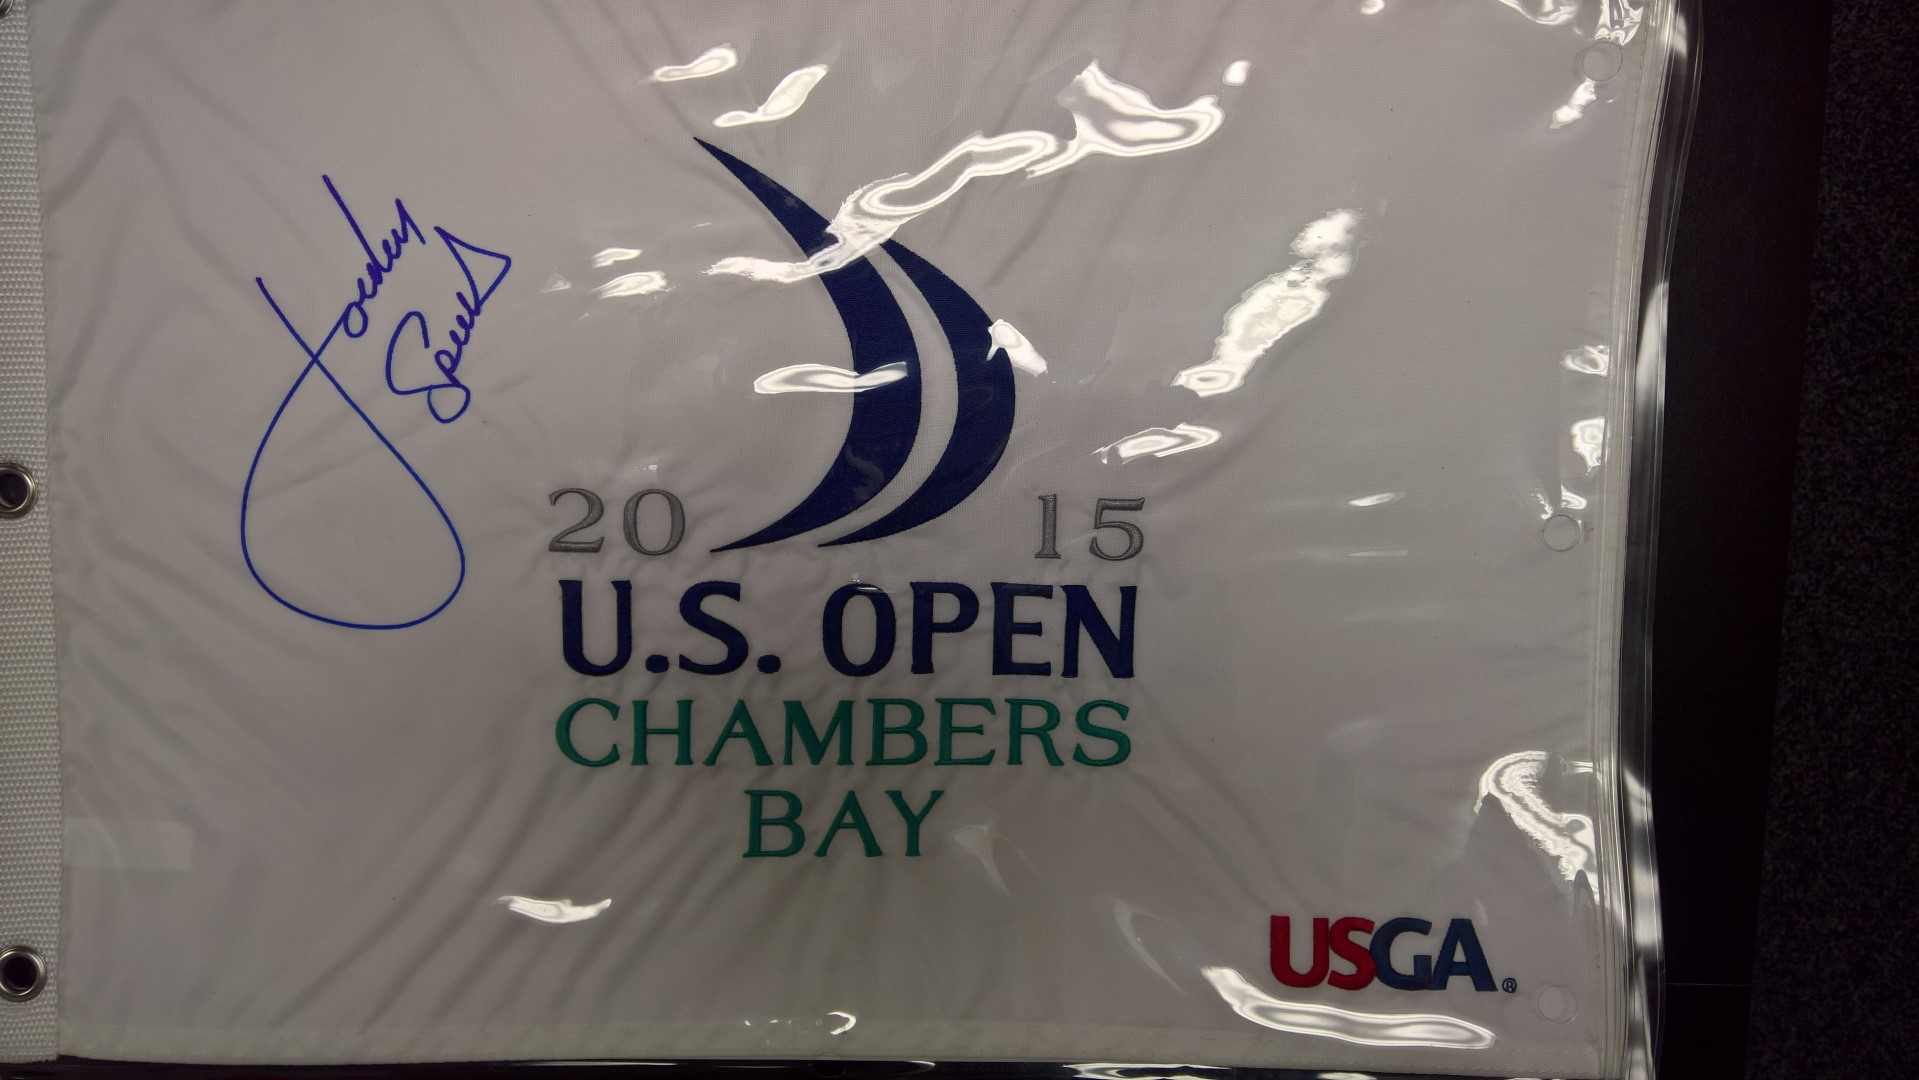 2015 US Open (Chambers Bag) Flag Signed by Jordan Spieth